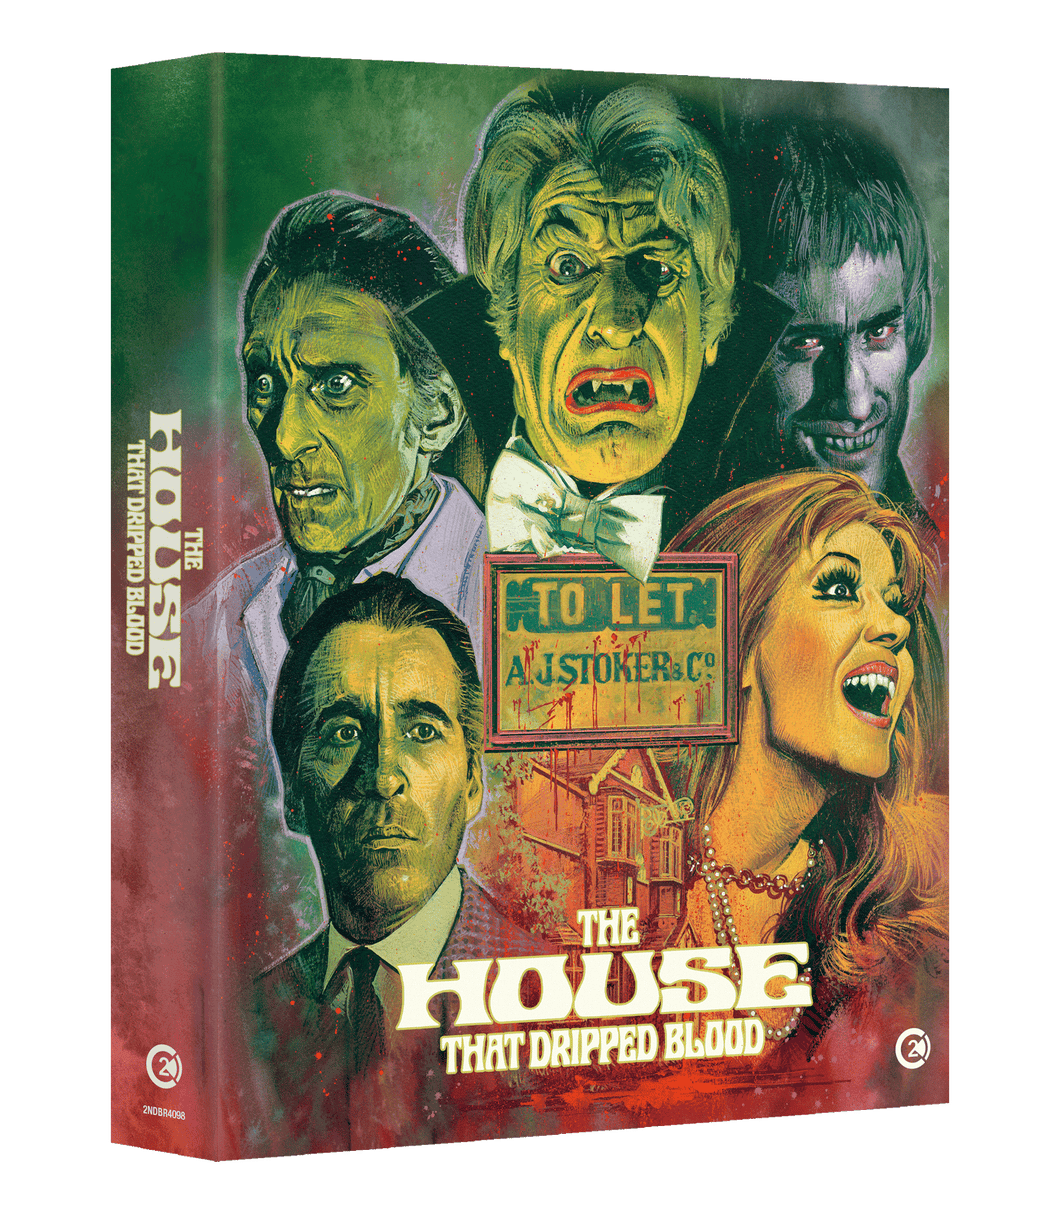 The House That Dripped Blood PRE ORDER: AVAILABLE 29TH JULY